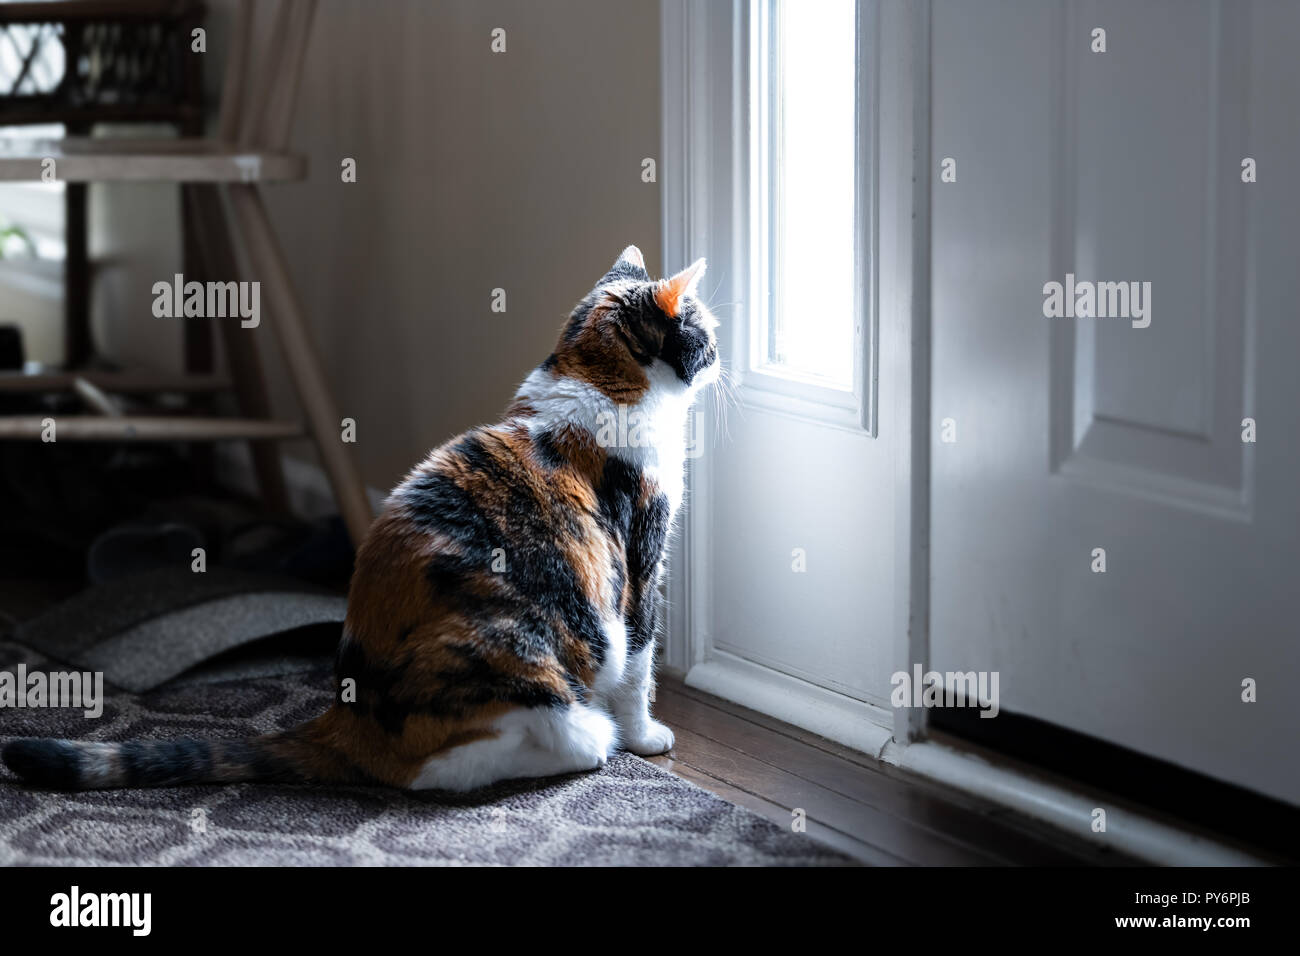 Sad, calico cat sitting, looking through small front door window on porch, waiting on hardwood carpet floor for owners, left behind abandoned - Stock Image